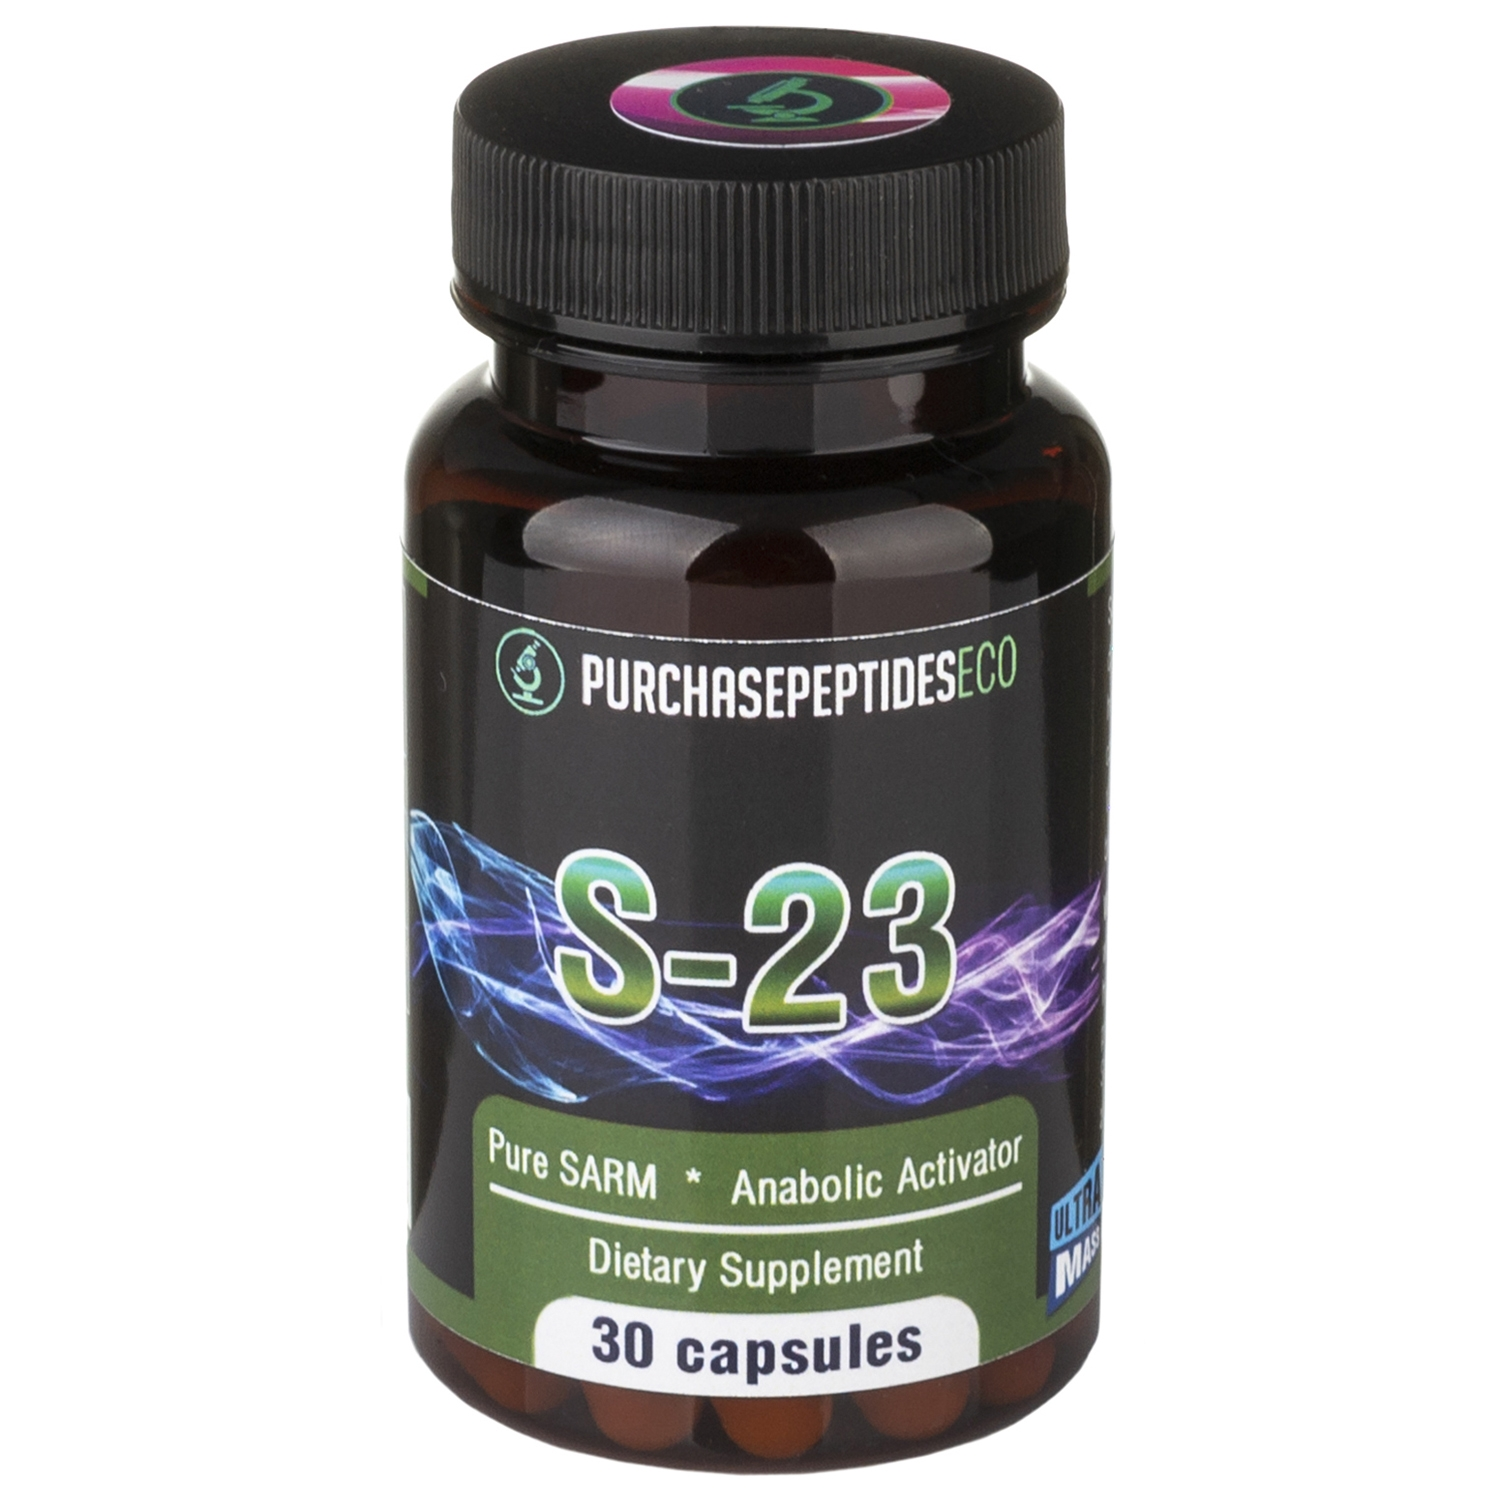 S-23 (PurchasepeptidesEco) 30 капс.